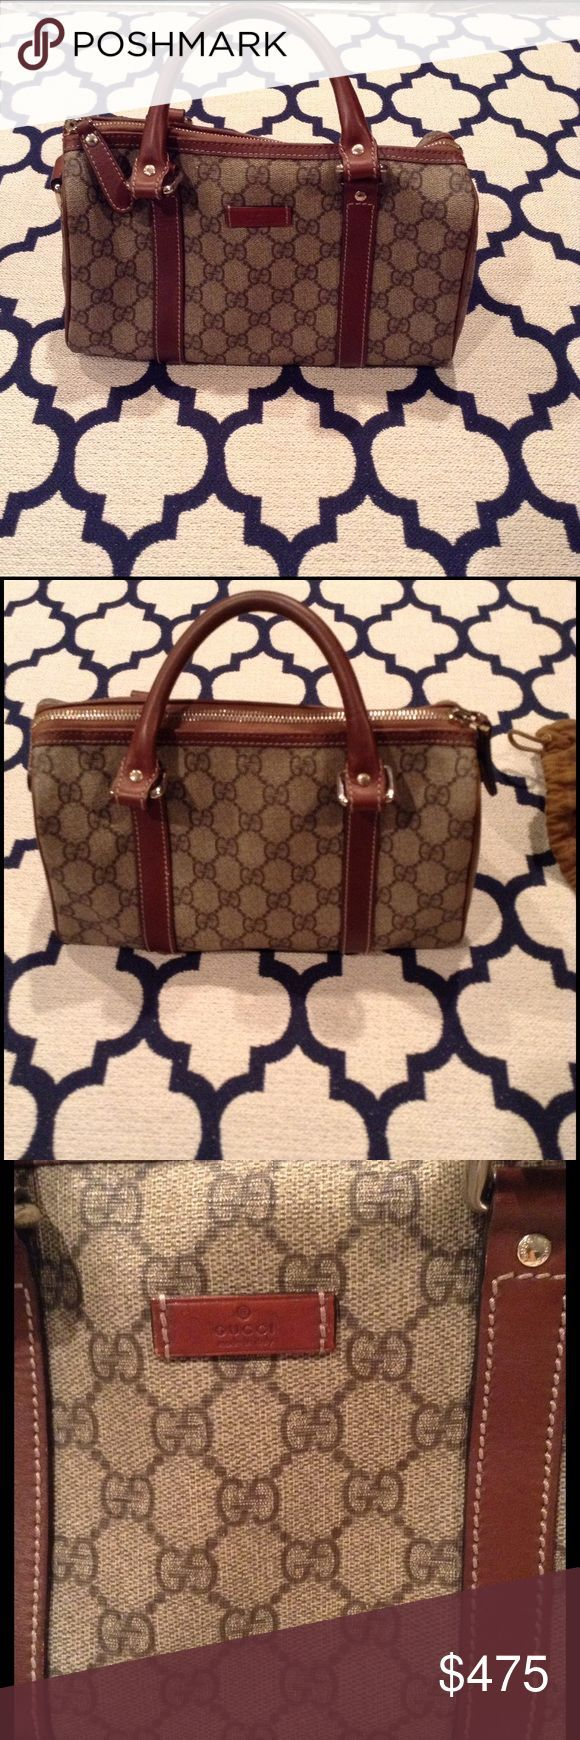 awesome Tendance salopette 2017 - Gucci 'Joy' Boston Bag Beige/ebony GG plus brown leather trim and light ... Check more at https://listspirit.com/tendance-salopette-2017-gucci-joy-boston-bag-beigeebony-gg-plus-brown-leather-trim-and-light/